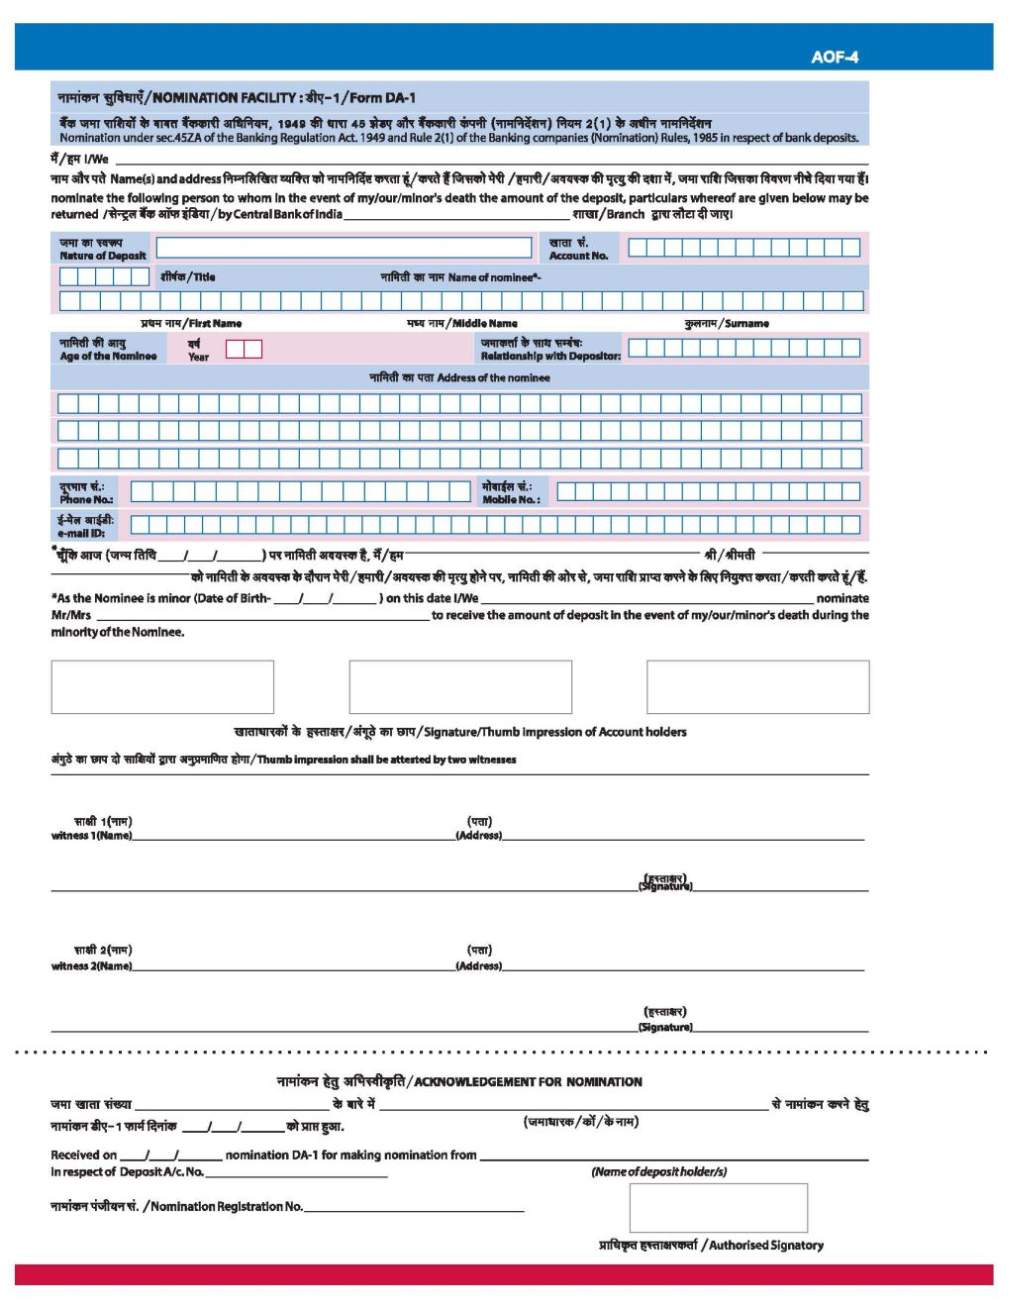 excel spreadsheet checkbook register template can you download